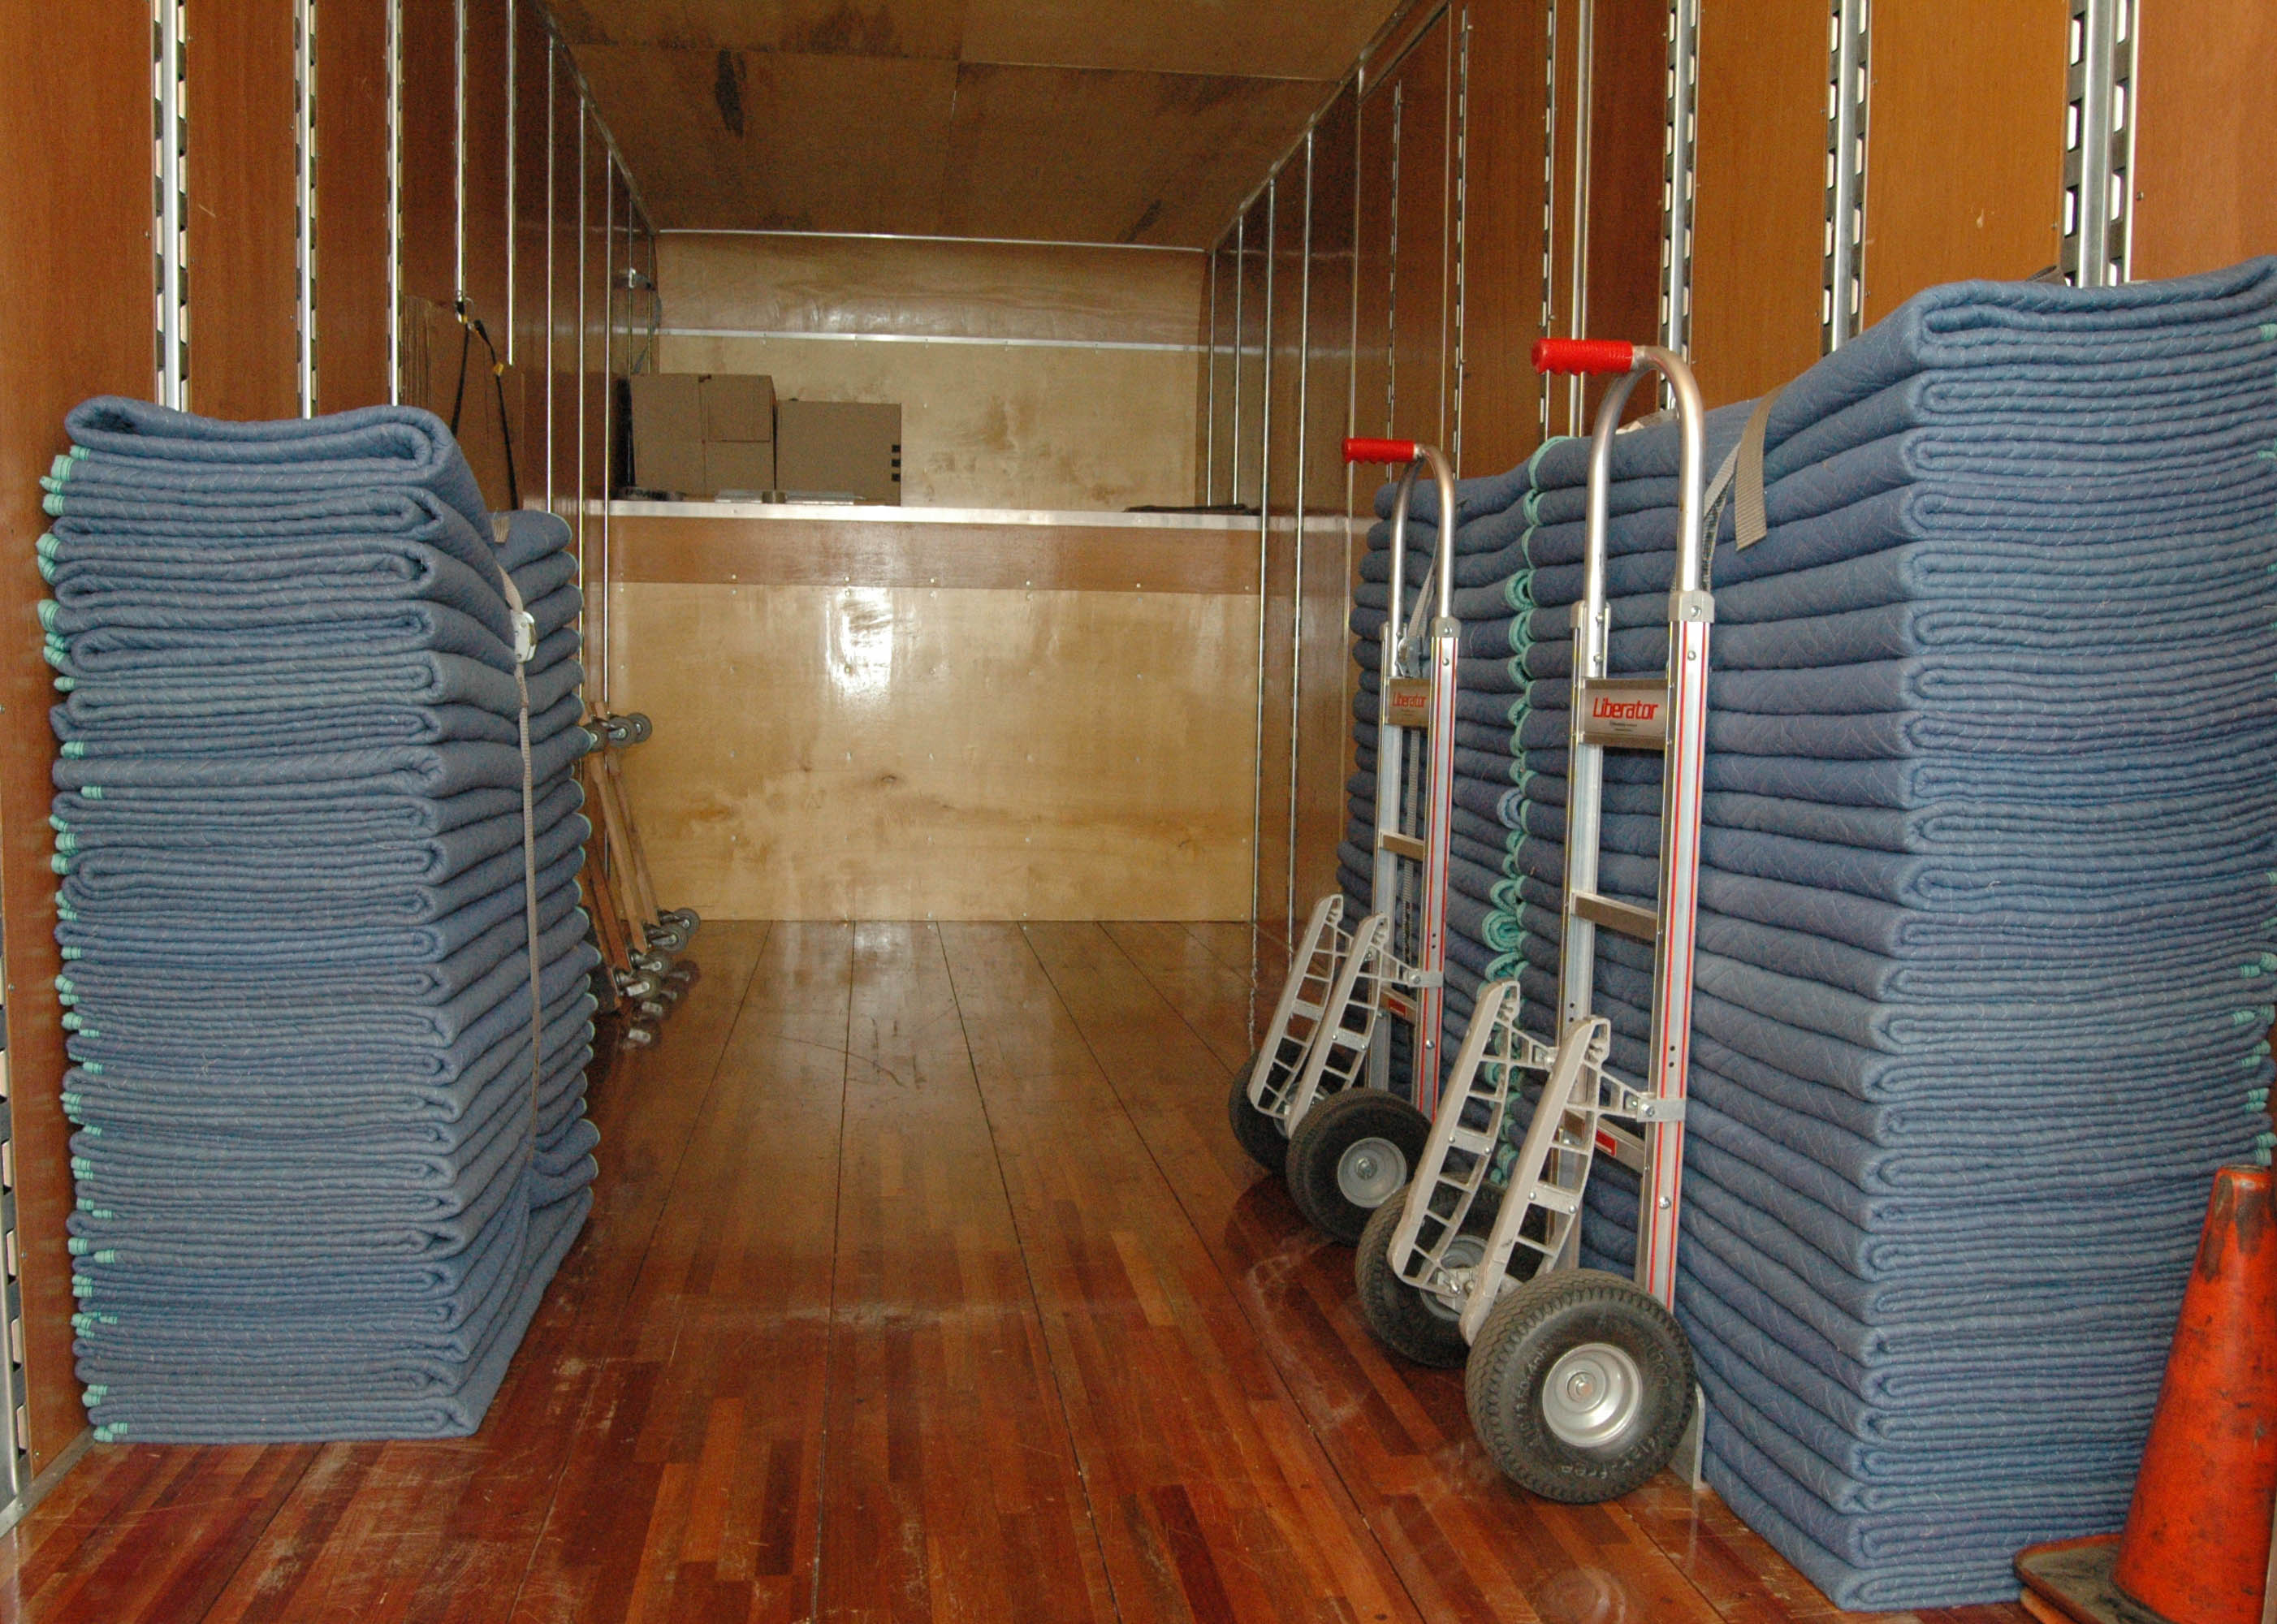 Moving And Storage Services In Dunwoody, GA